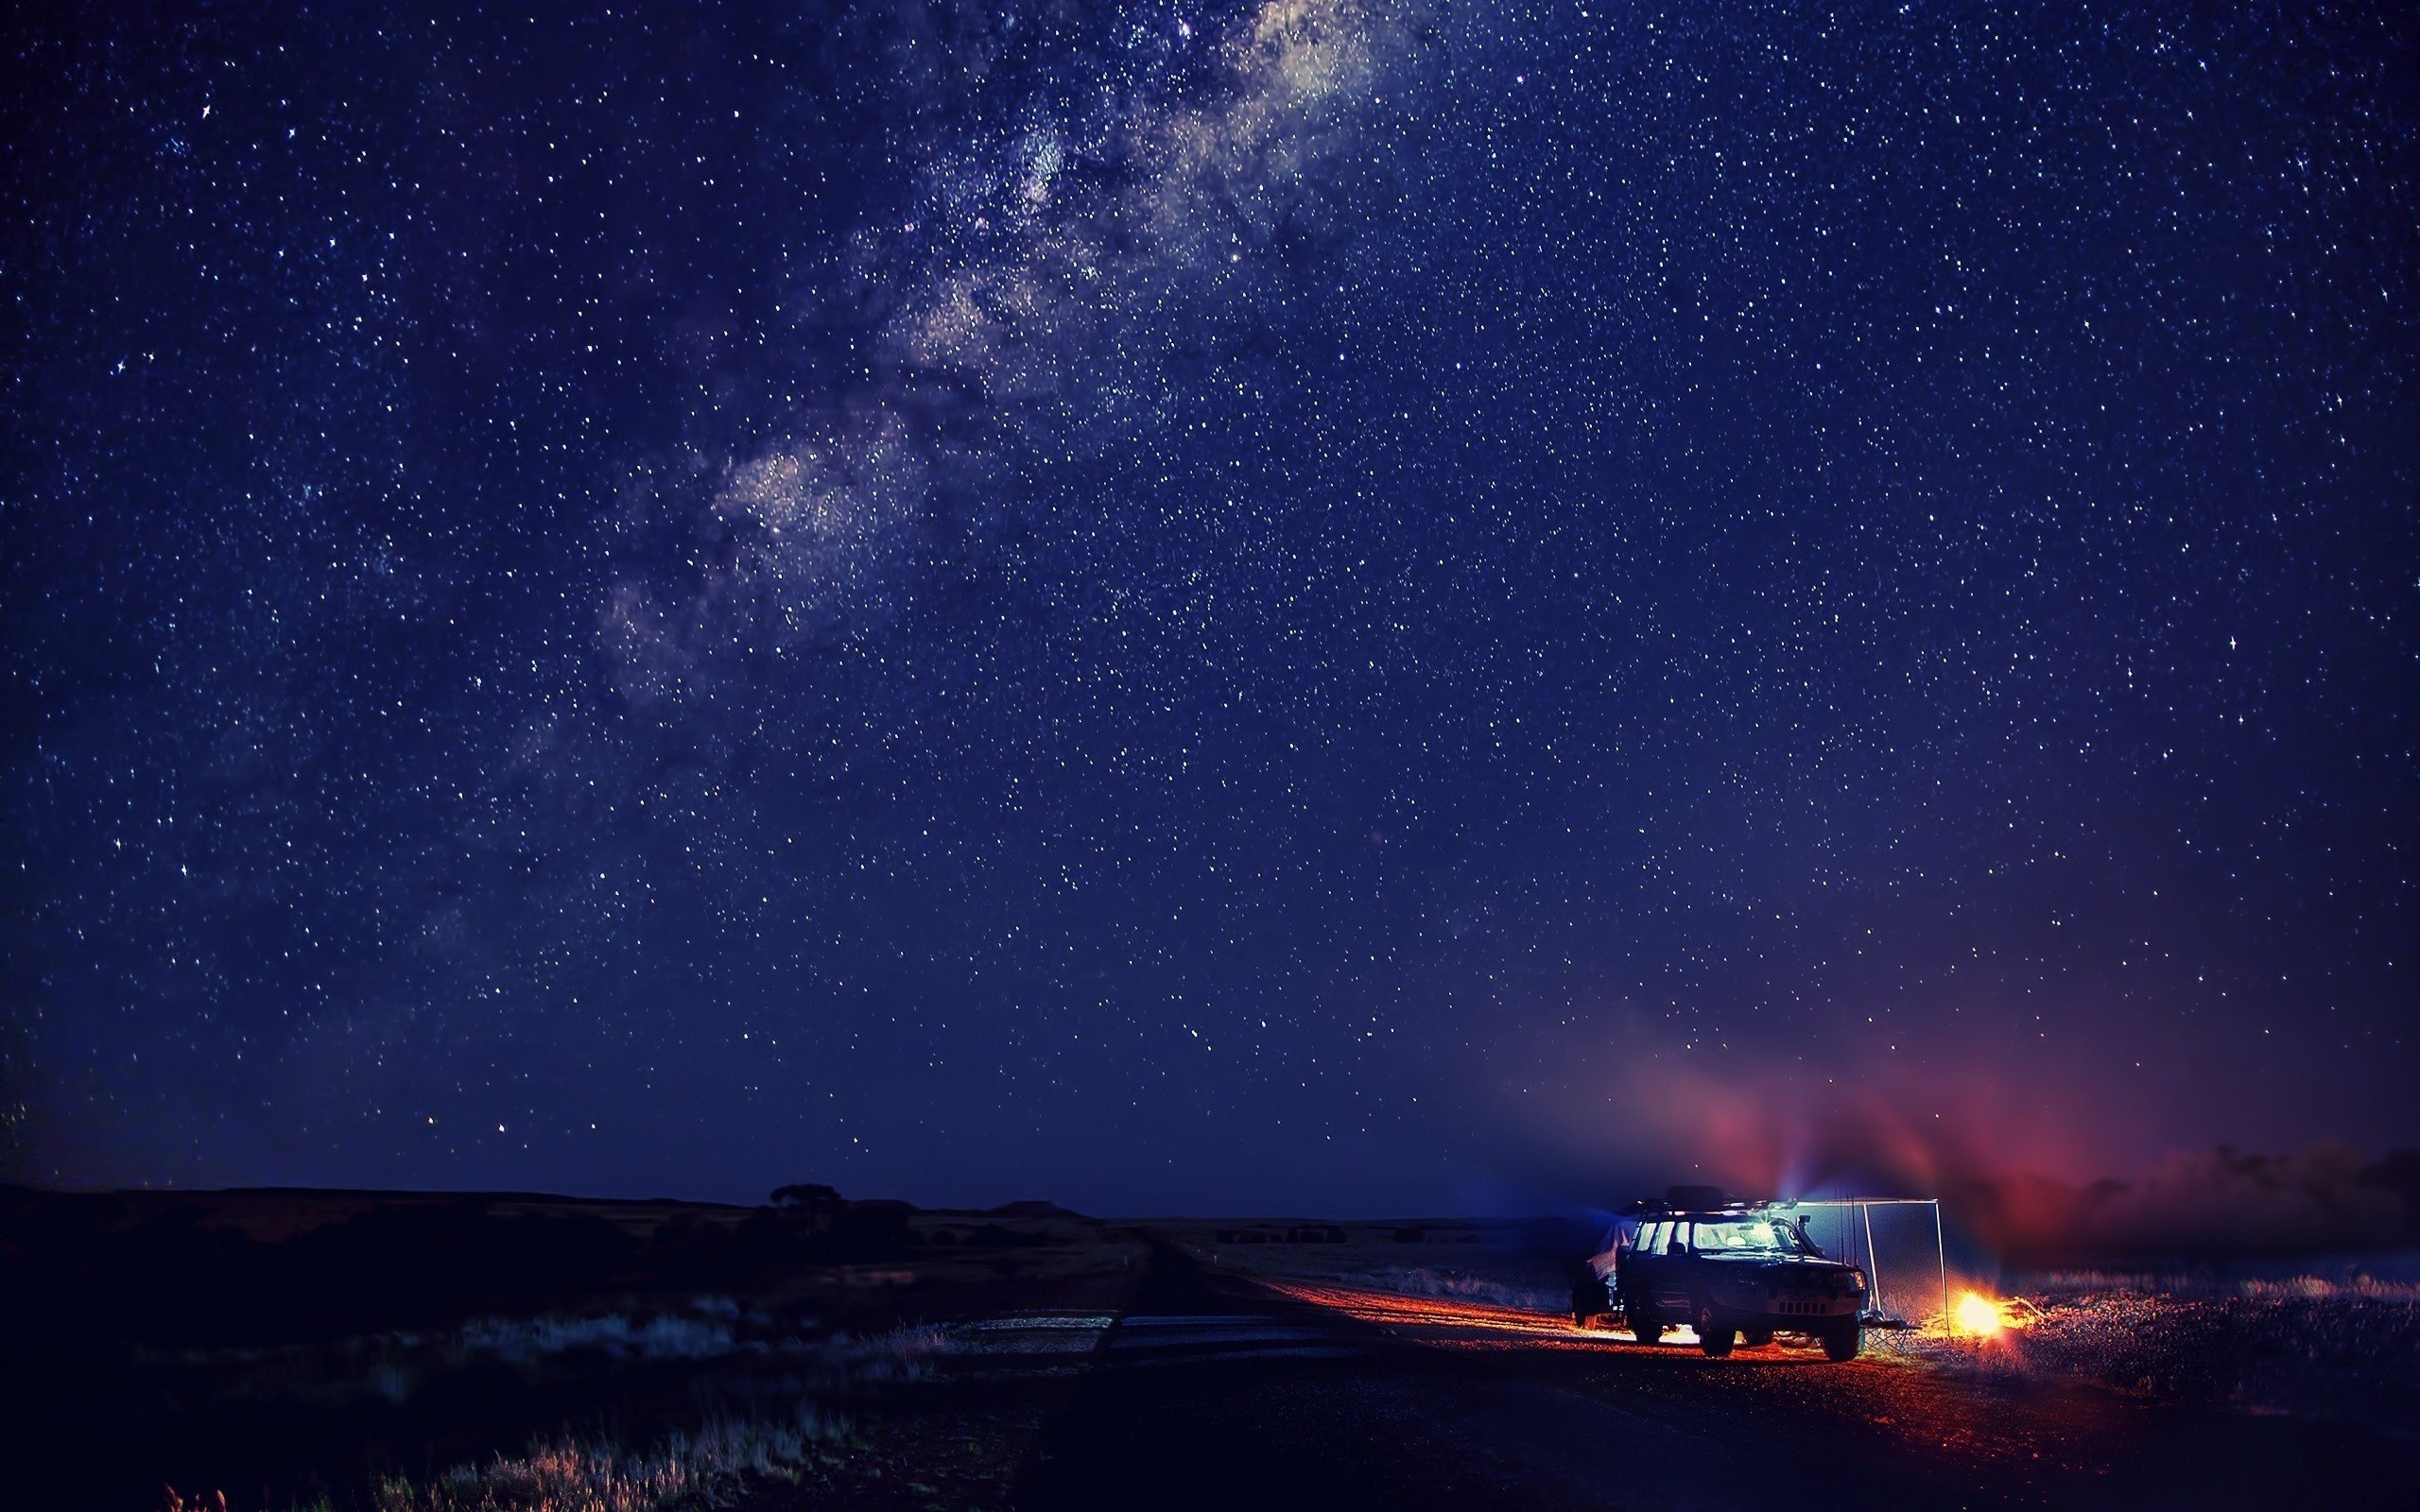 Stars Space Galaxy Milky Way Cabin Night Sky Campfire Hd Wallpapers Desktop And Mobile Images Photos